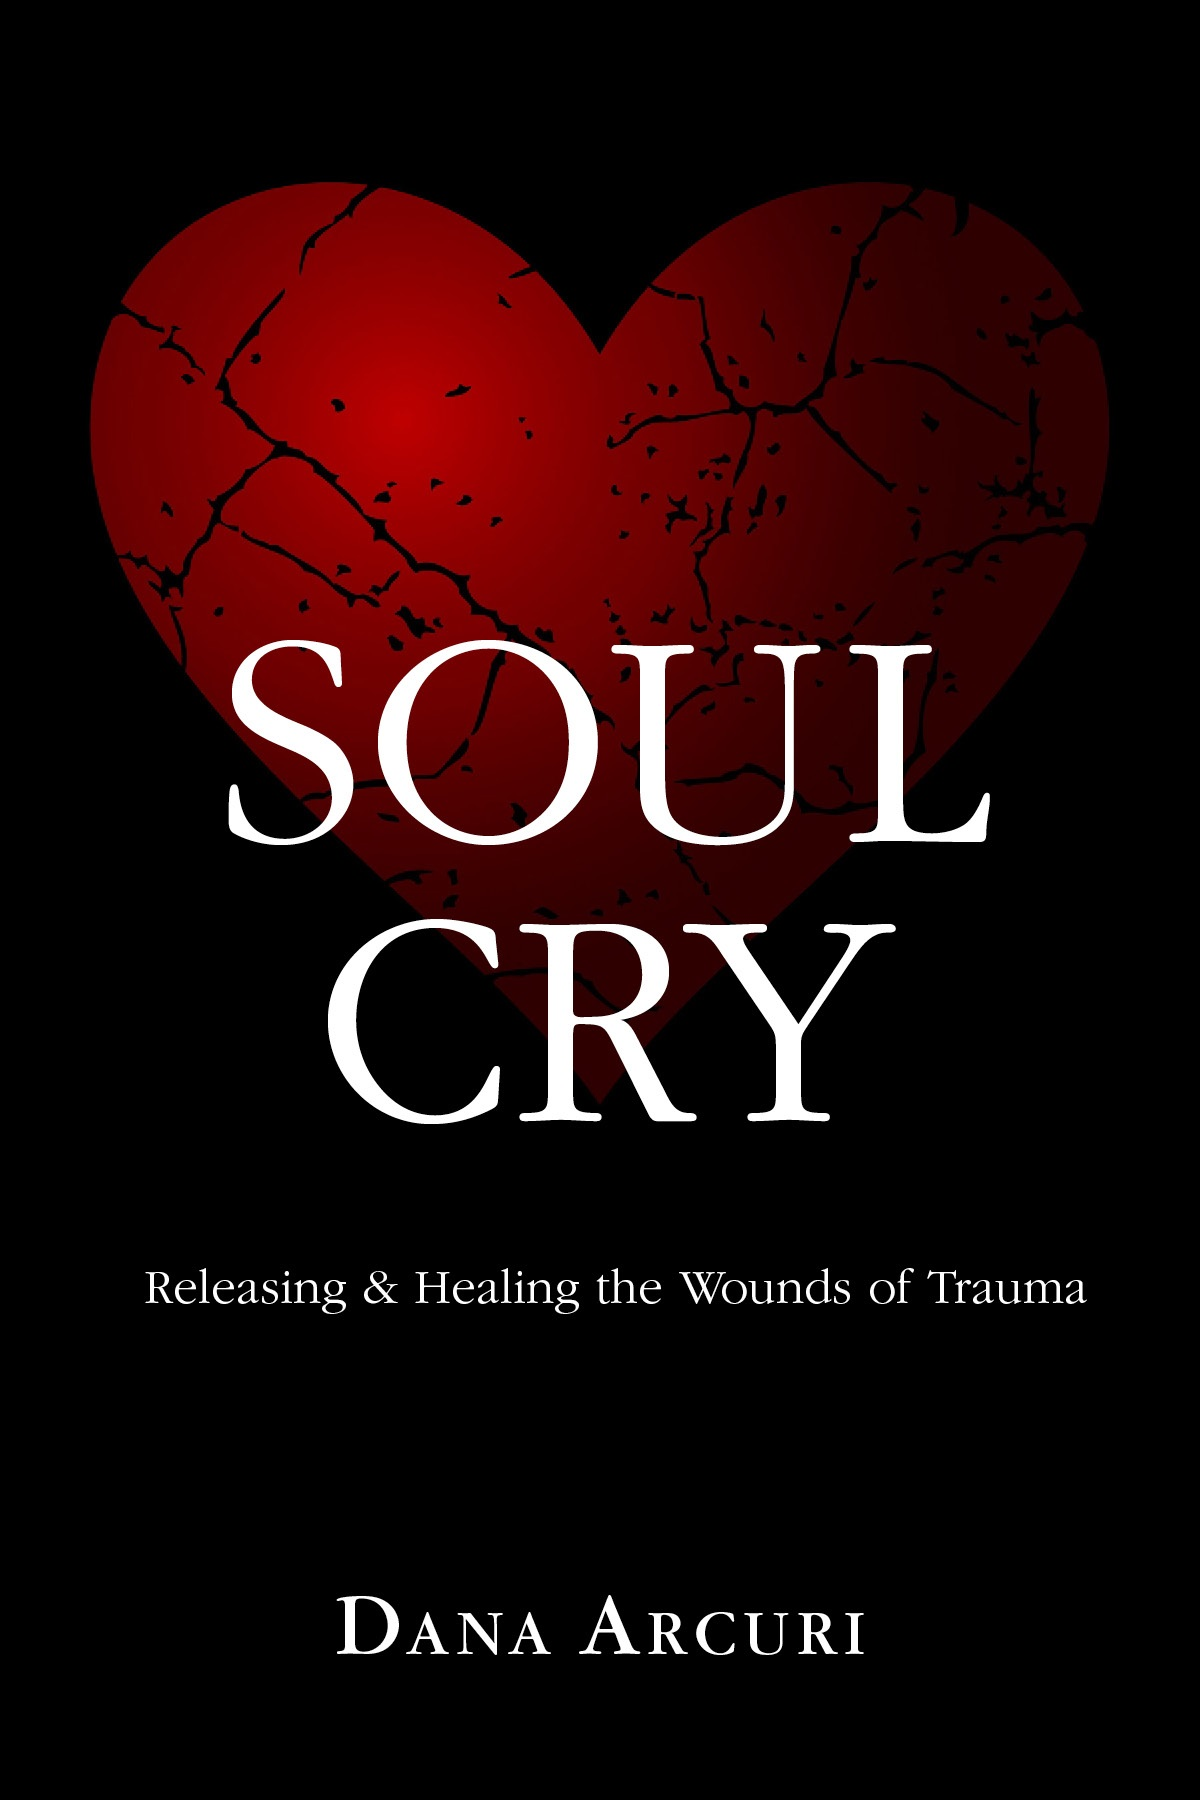 Soul Cry: Releasing & Healing the Wounds of Trauma